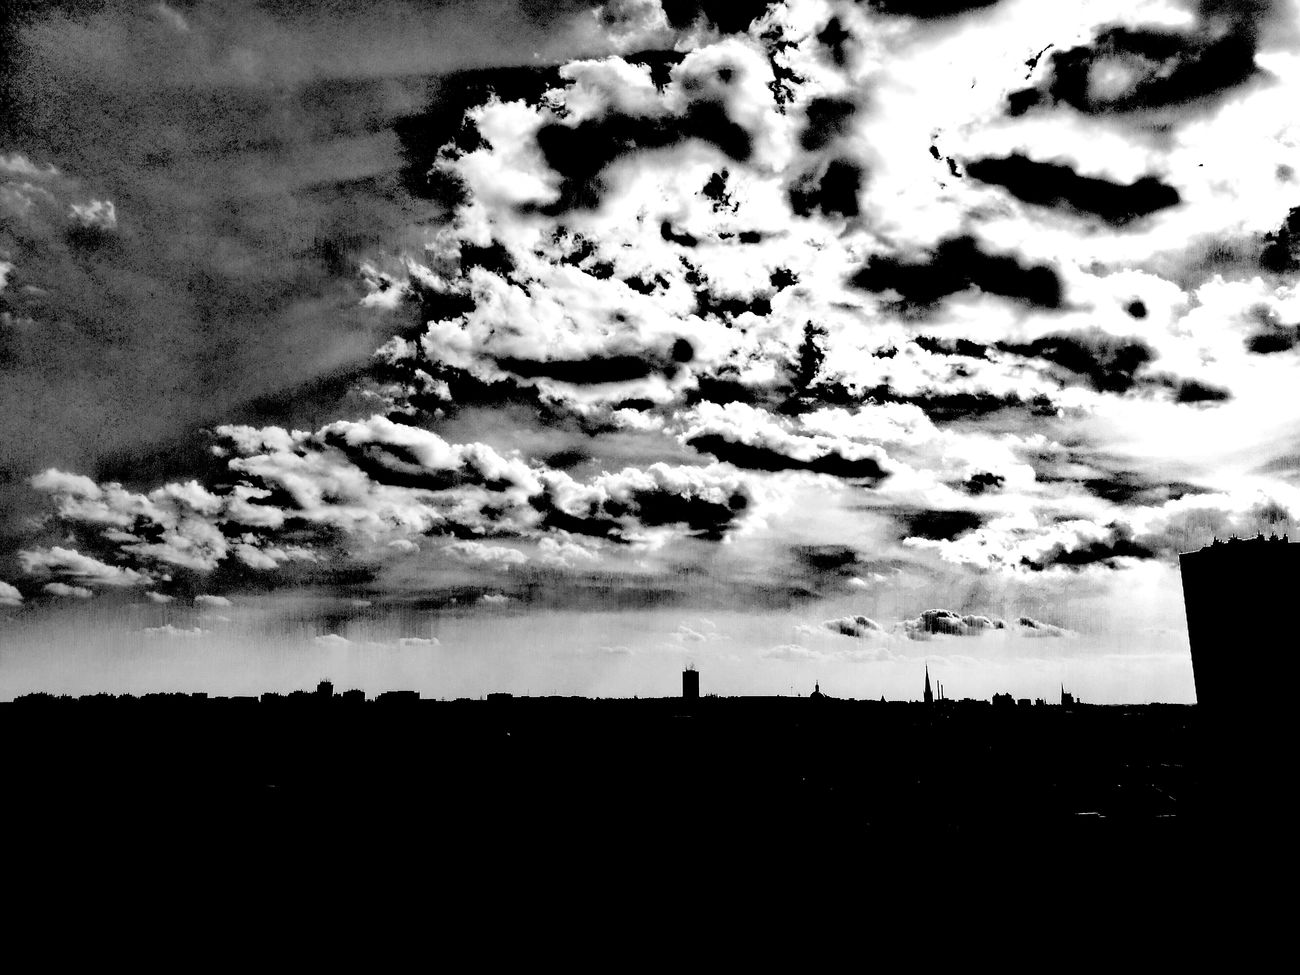 Hanging Out City Landscape Sky And Clouds Check This Out City View  Black And White Photography Black & White Photography Blackandwhite Photography Black Black & White Enjoying Life Skyline Blackandwhite Sky Light And Shadow Taking Photos Relaxing Hello World Cityscape Symbol Symbolic  Symbolism